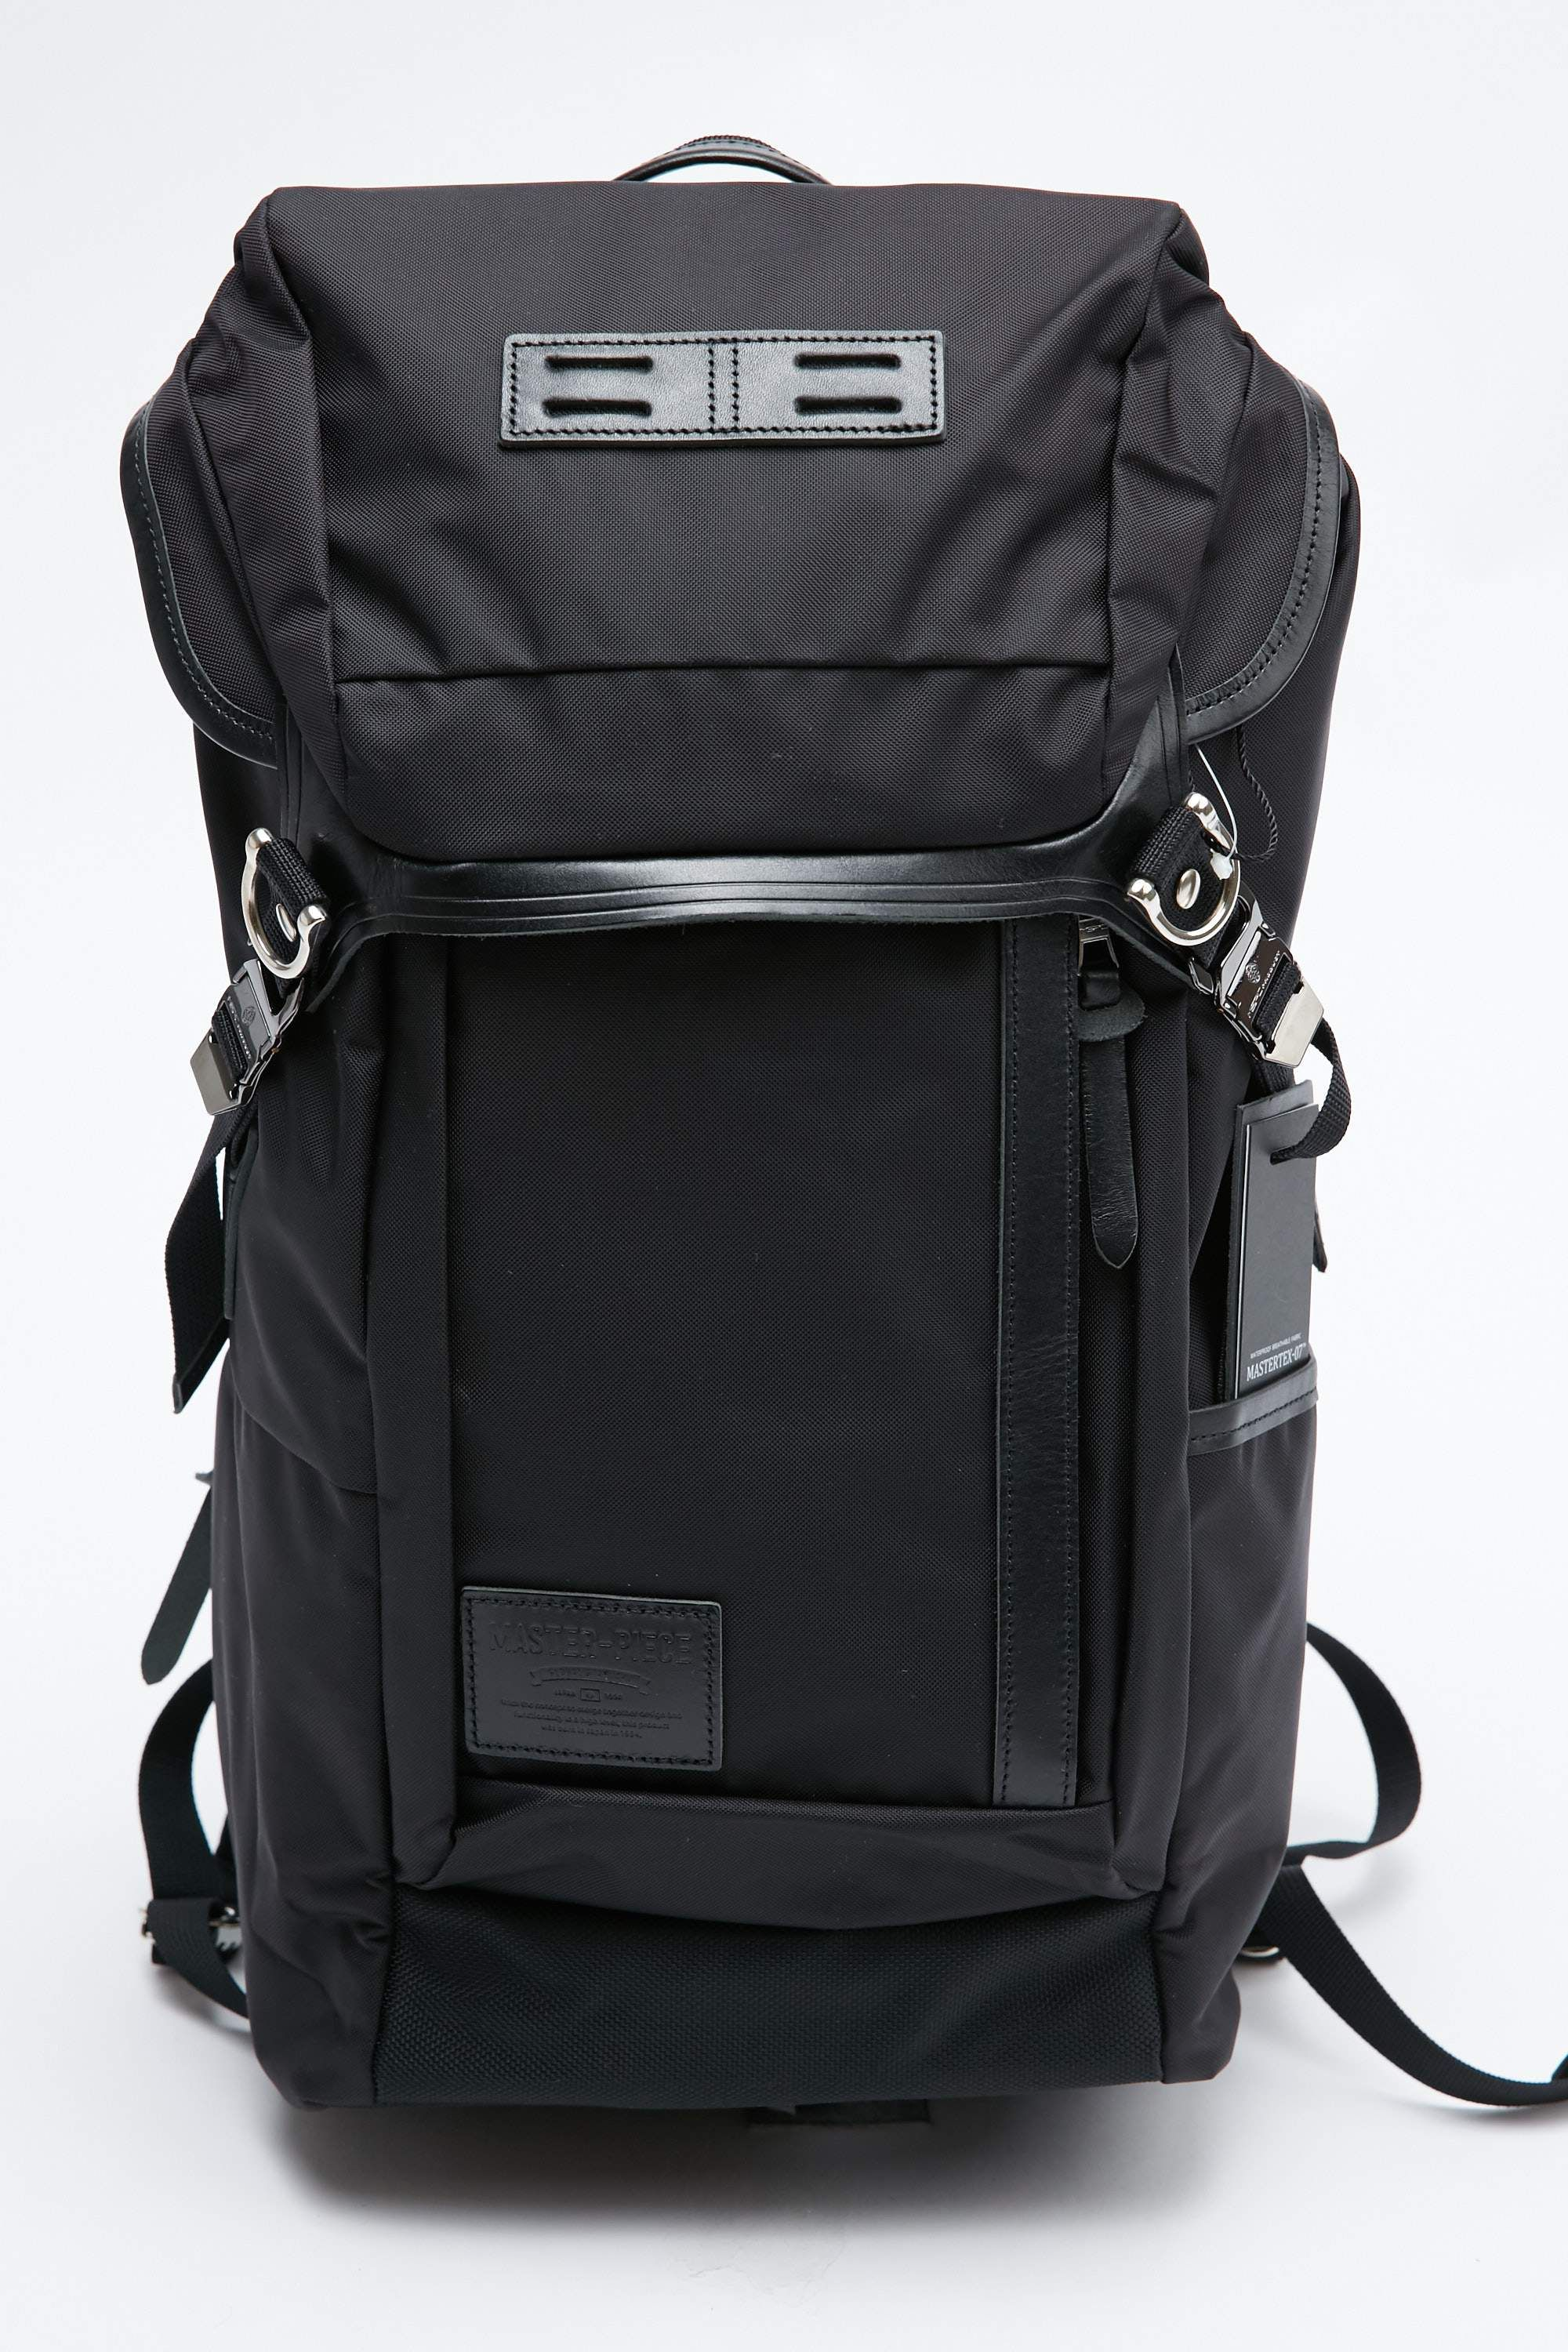 Master-Piece Potential Ver. 2 Backpack - Black in 2018   Products ... 4d23e9313c